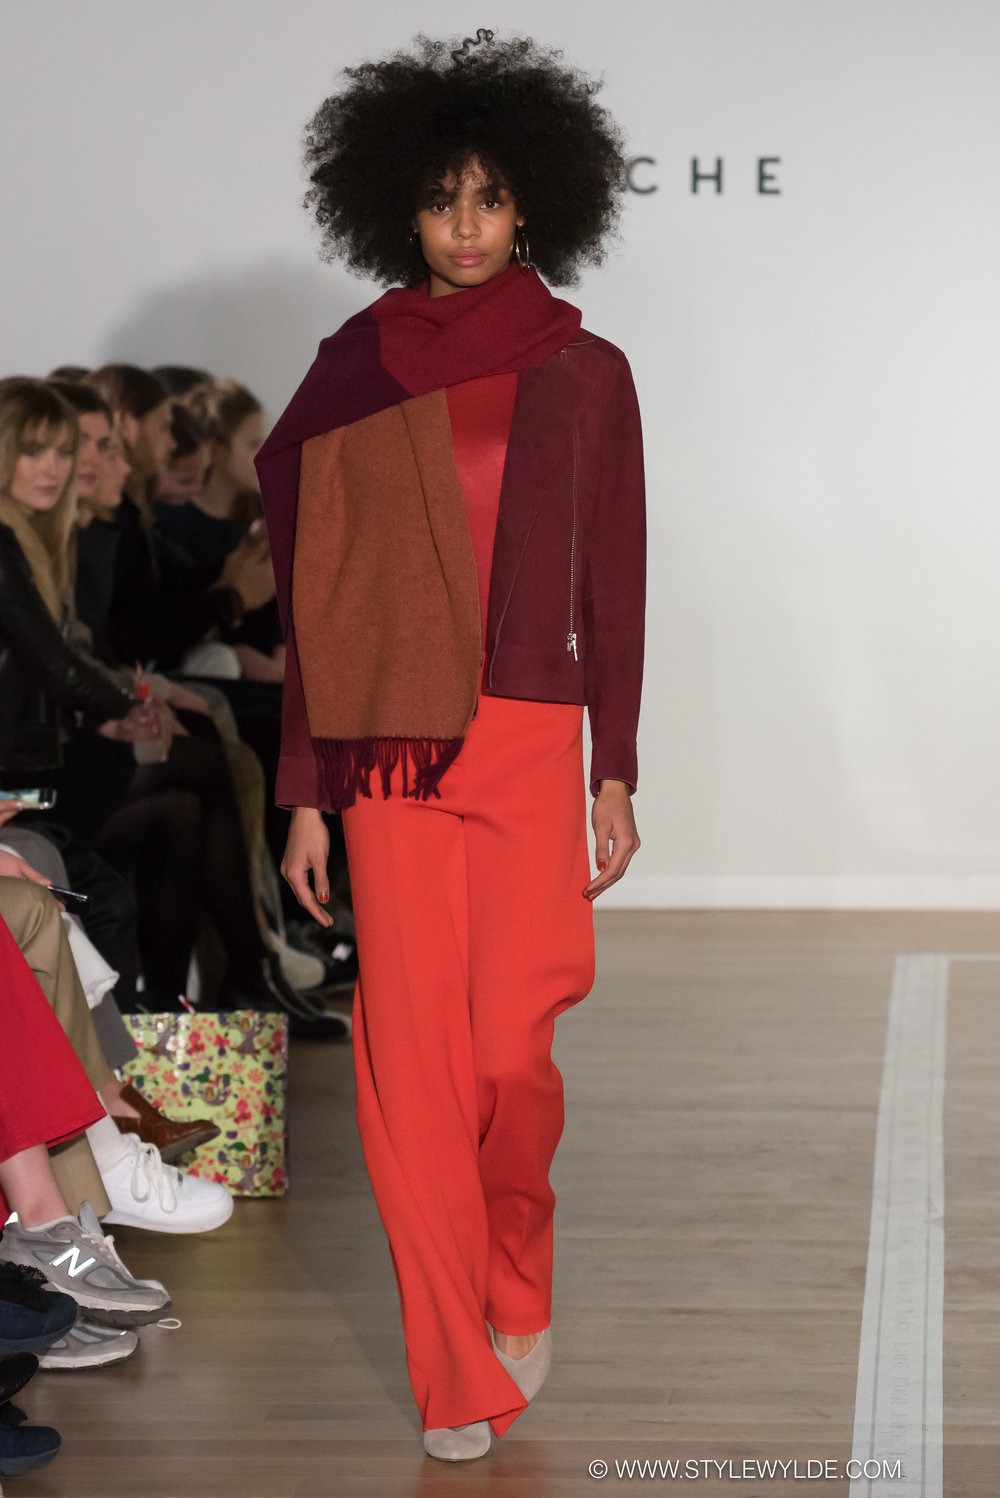 The New Girl - A huge amount of buzz surrounded the Blanche AW 2018 show which debuted on the first day of Copenhagen Fashion Week, and as the looks came down the runway it was easy to see why. The collection was supremely well constructed and embodied the low-key, minimalist meets modern, design principles which are the hallmark of Scandinavian style. Definitely